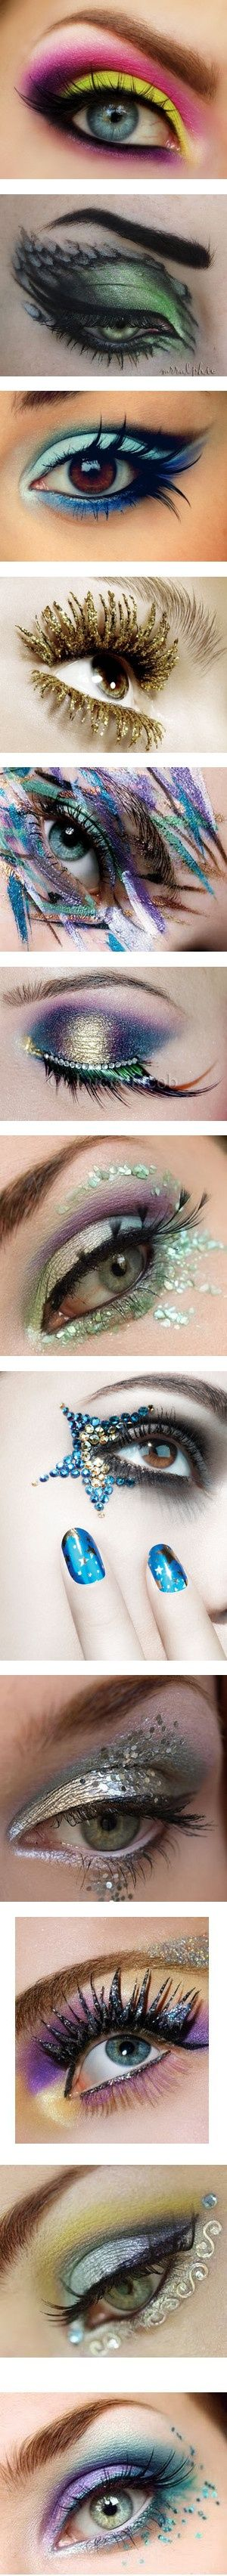 Get creative #AwesomeEyes